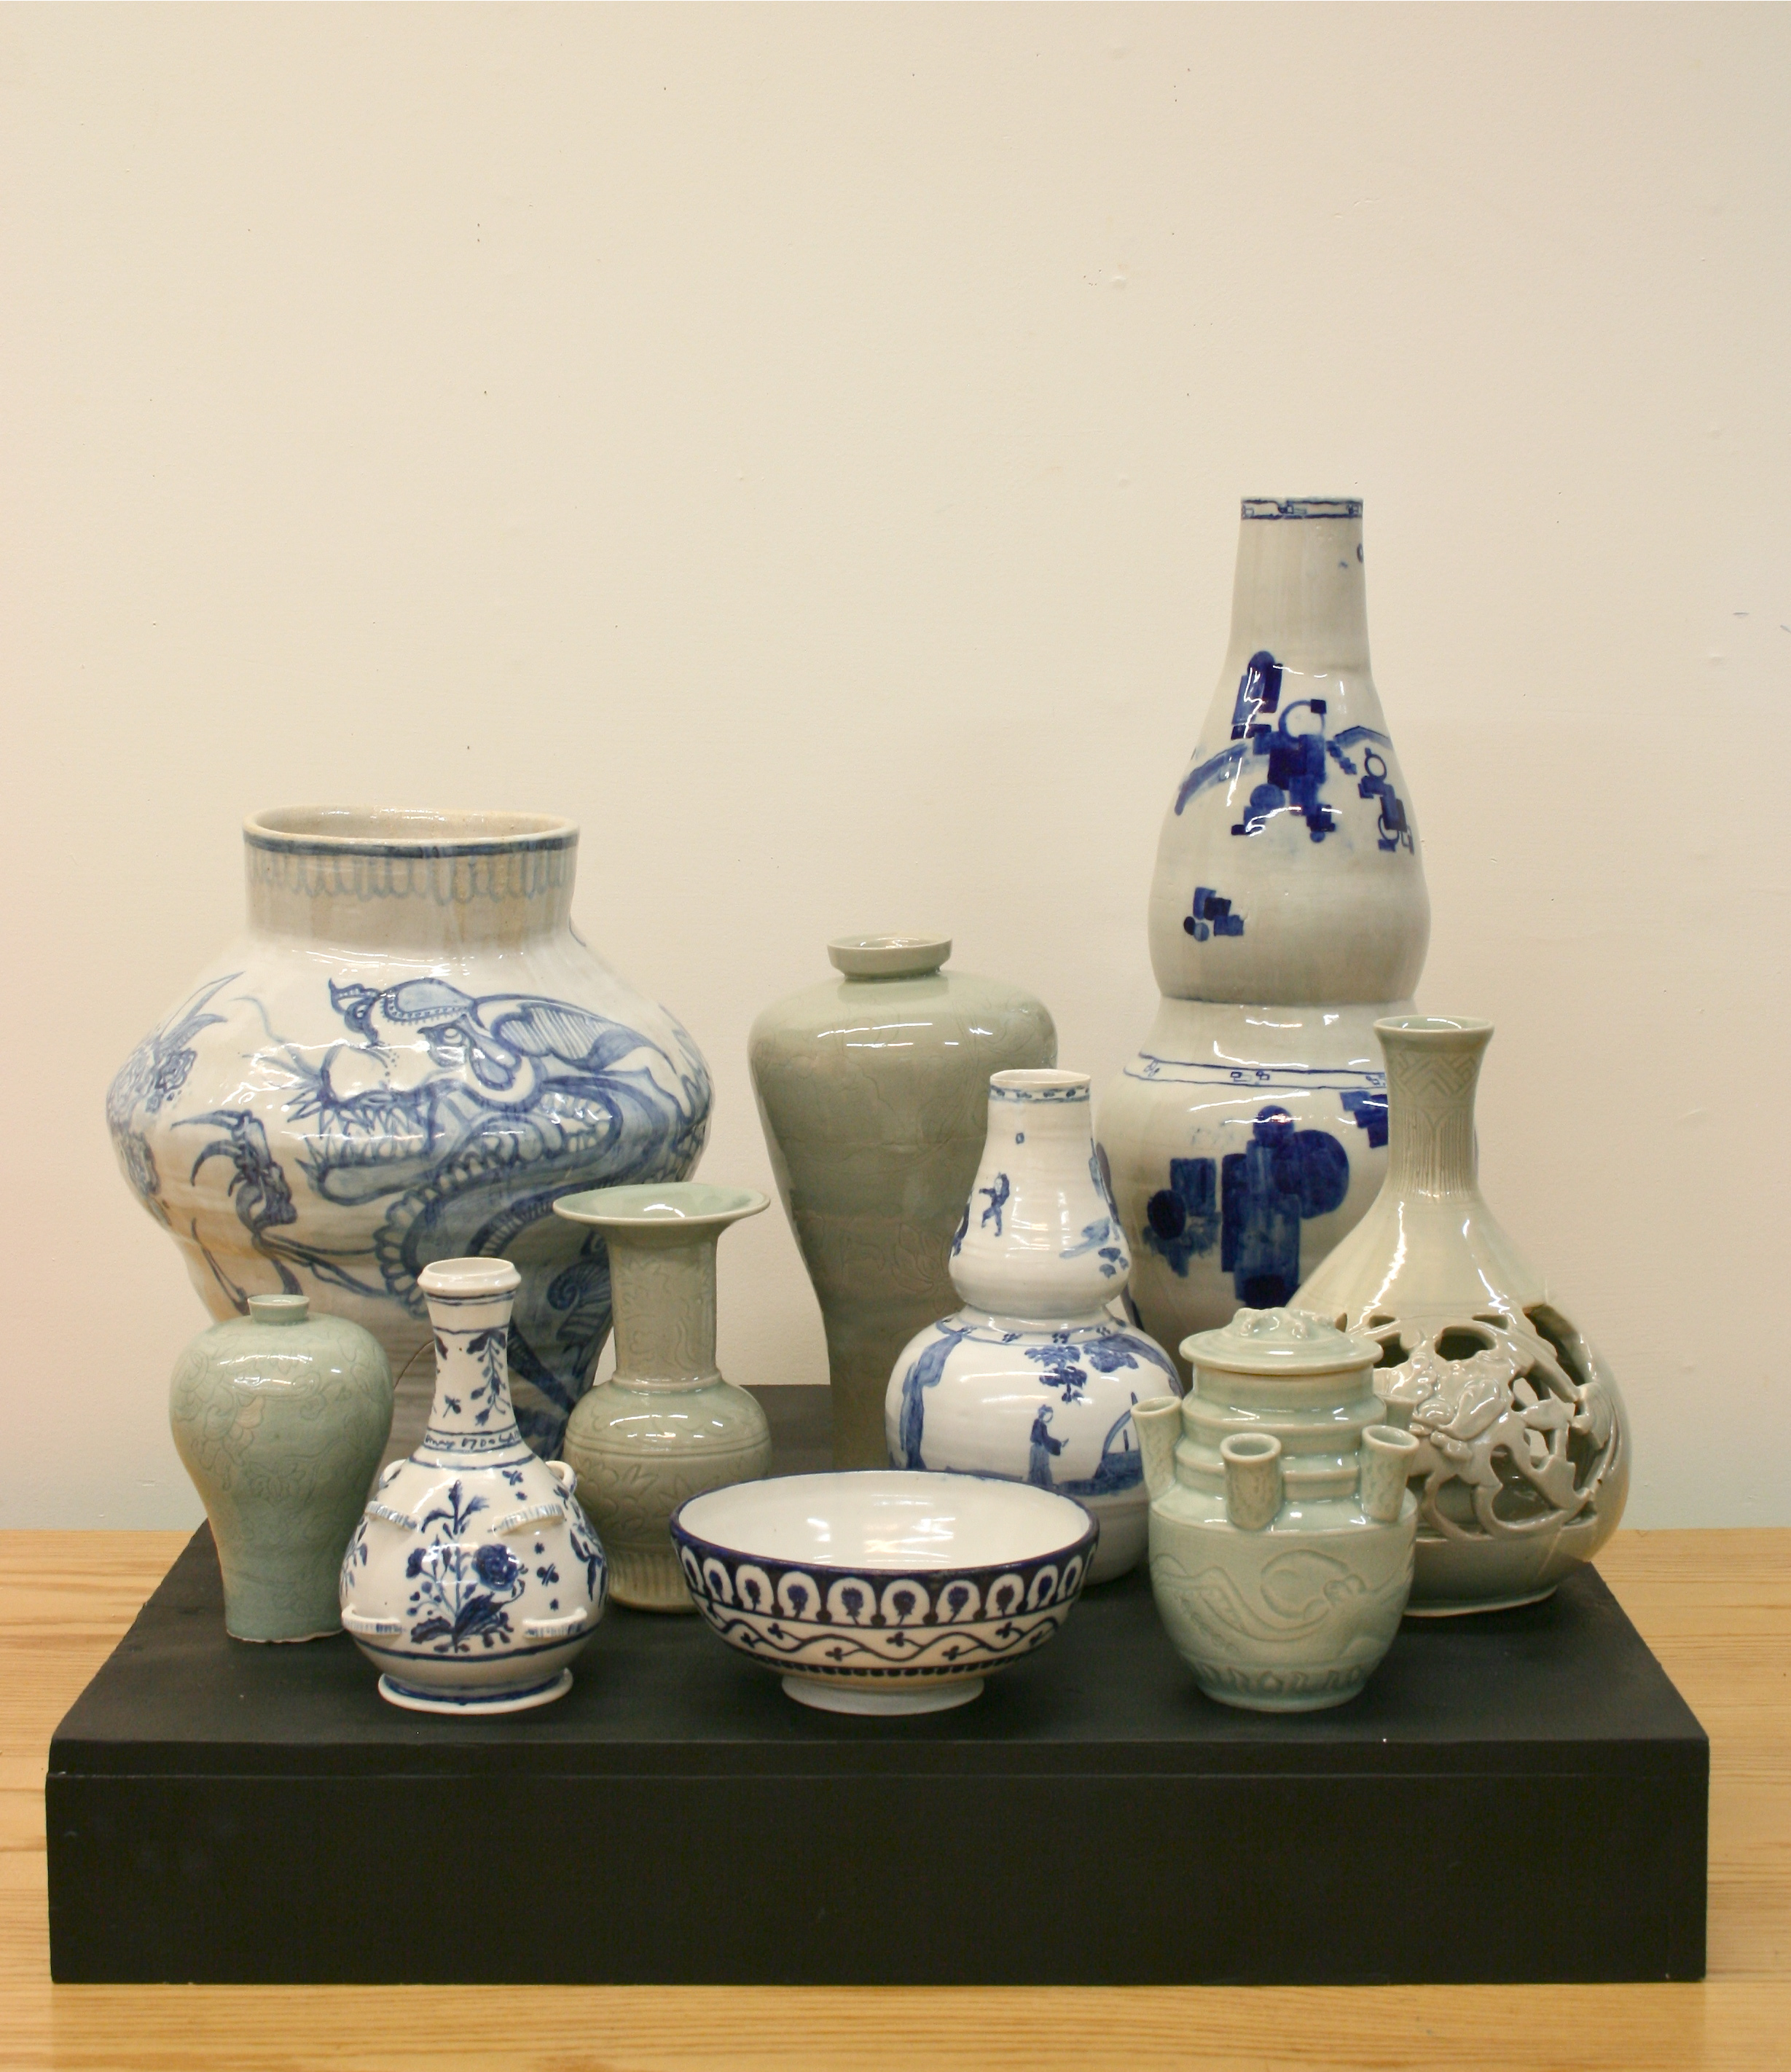 A selection of celadon and cobalt pots created from objects in the collection of the Asian Art Museum in San Francisco the Victoria and Albert in London. These students were asked to adjust the scale and decorative scheme as they created their own versions of the originals.